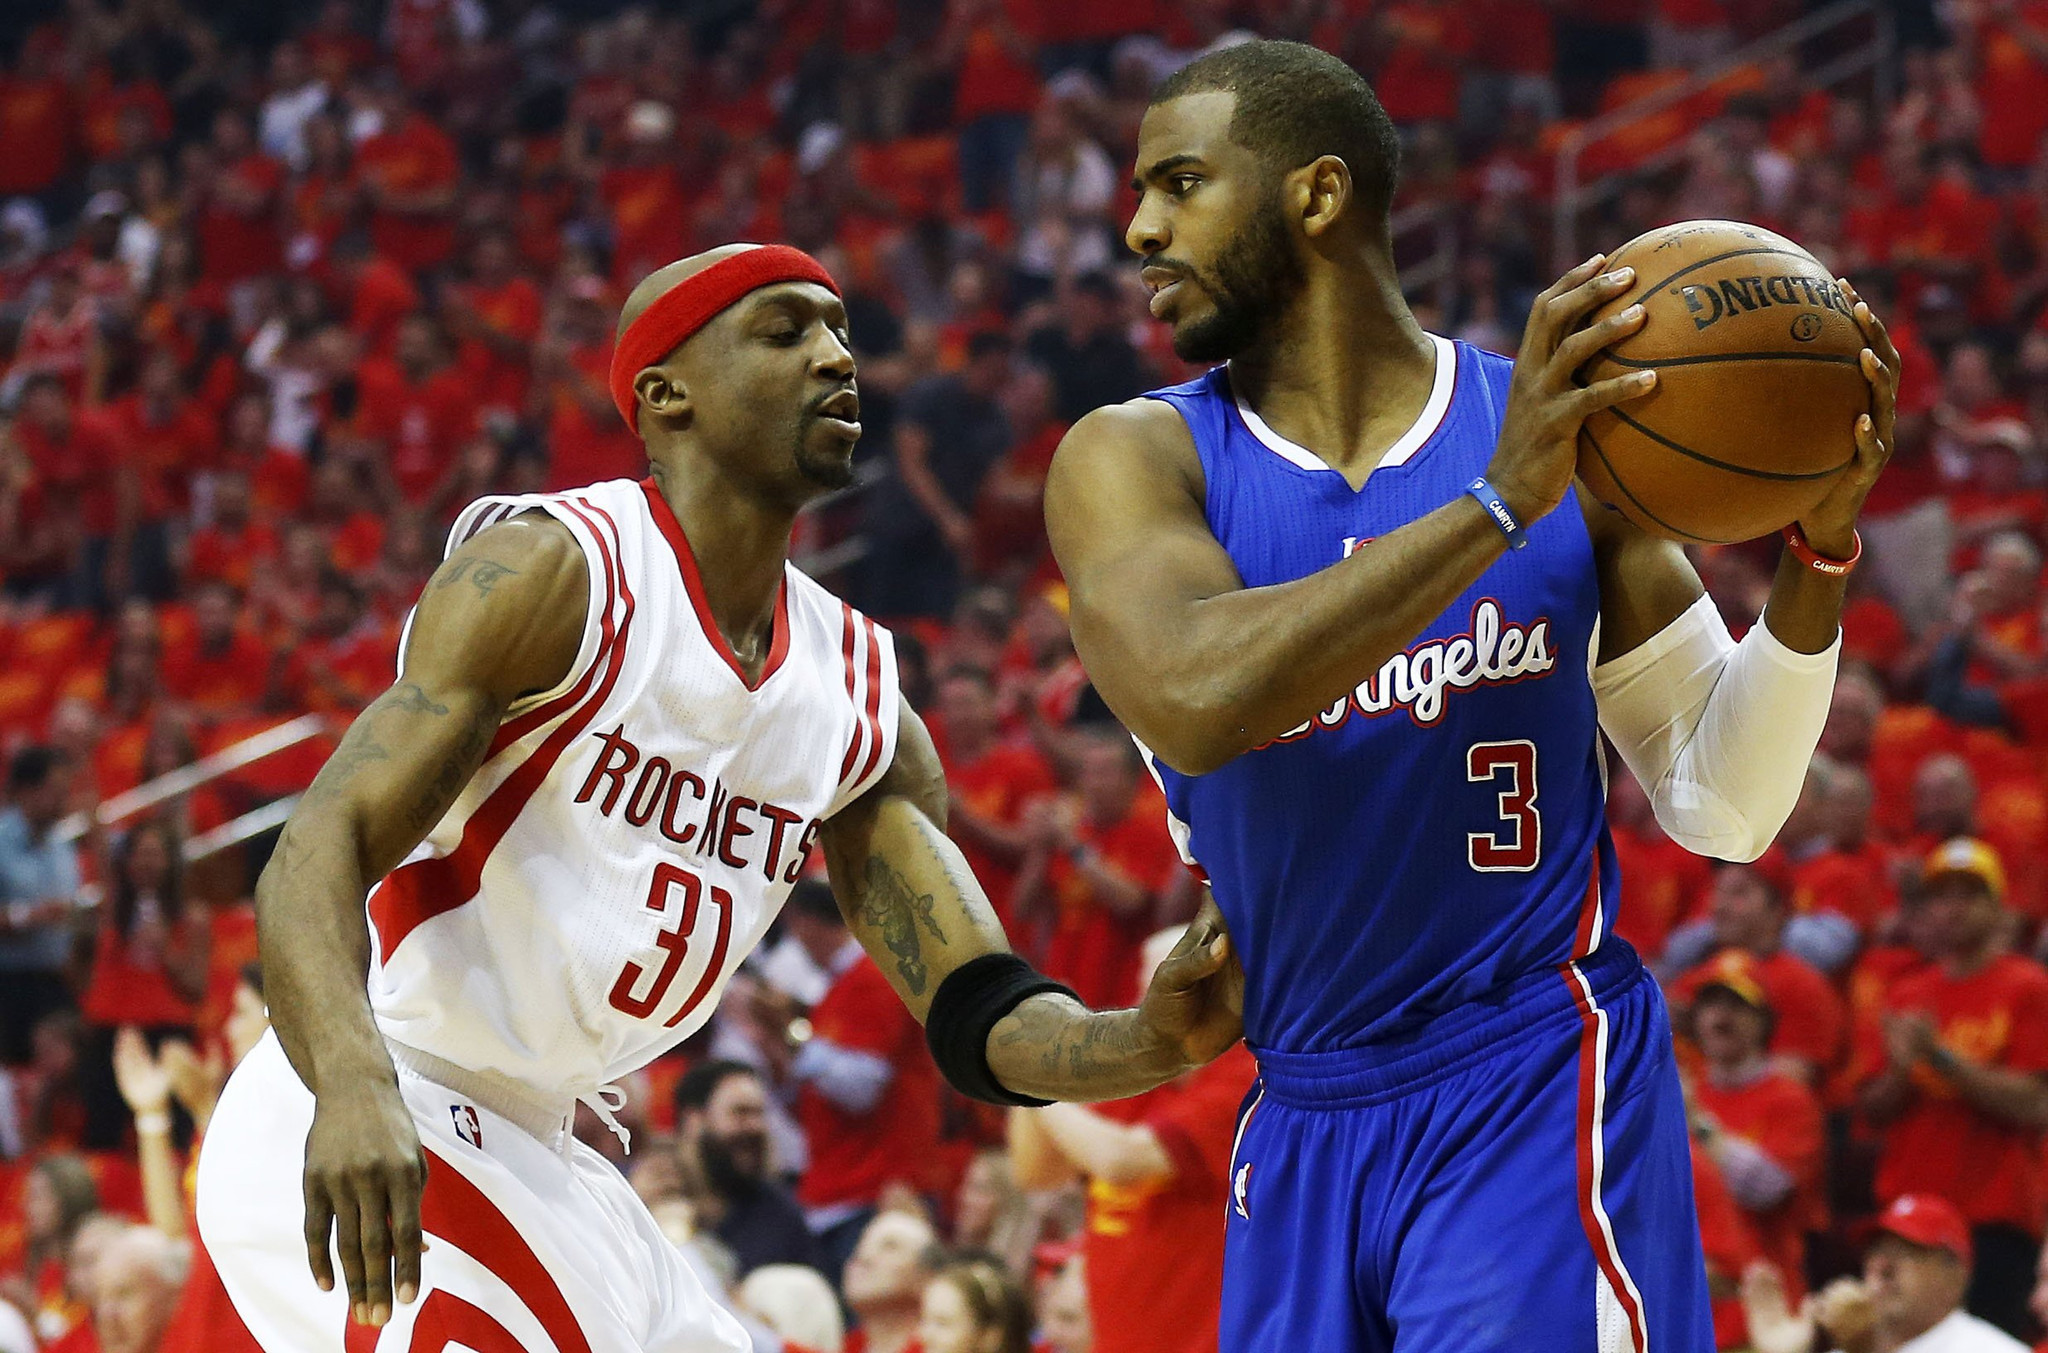 NBA Playoffs: Clippers fall in Game 7 to Rockets, 113-100 ...Rockets Game